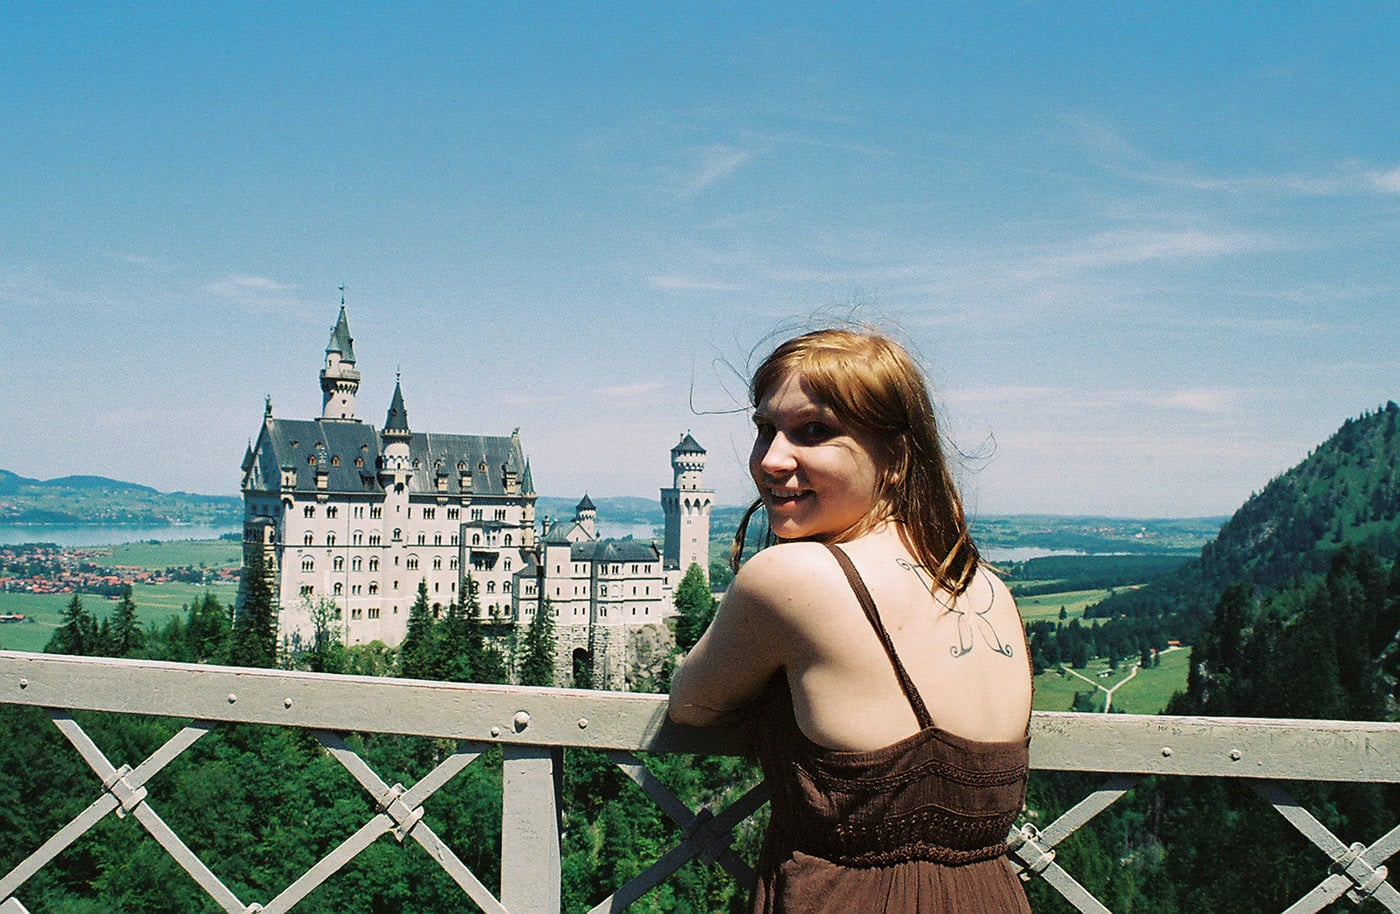 A fairy finds her castle – Neuschwanstein Castle in Munich, Germany